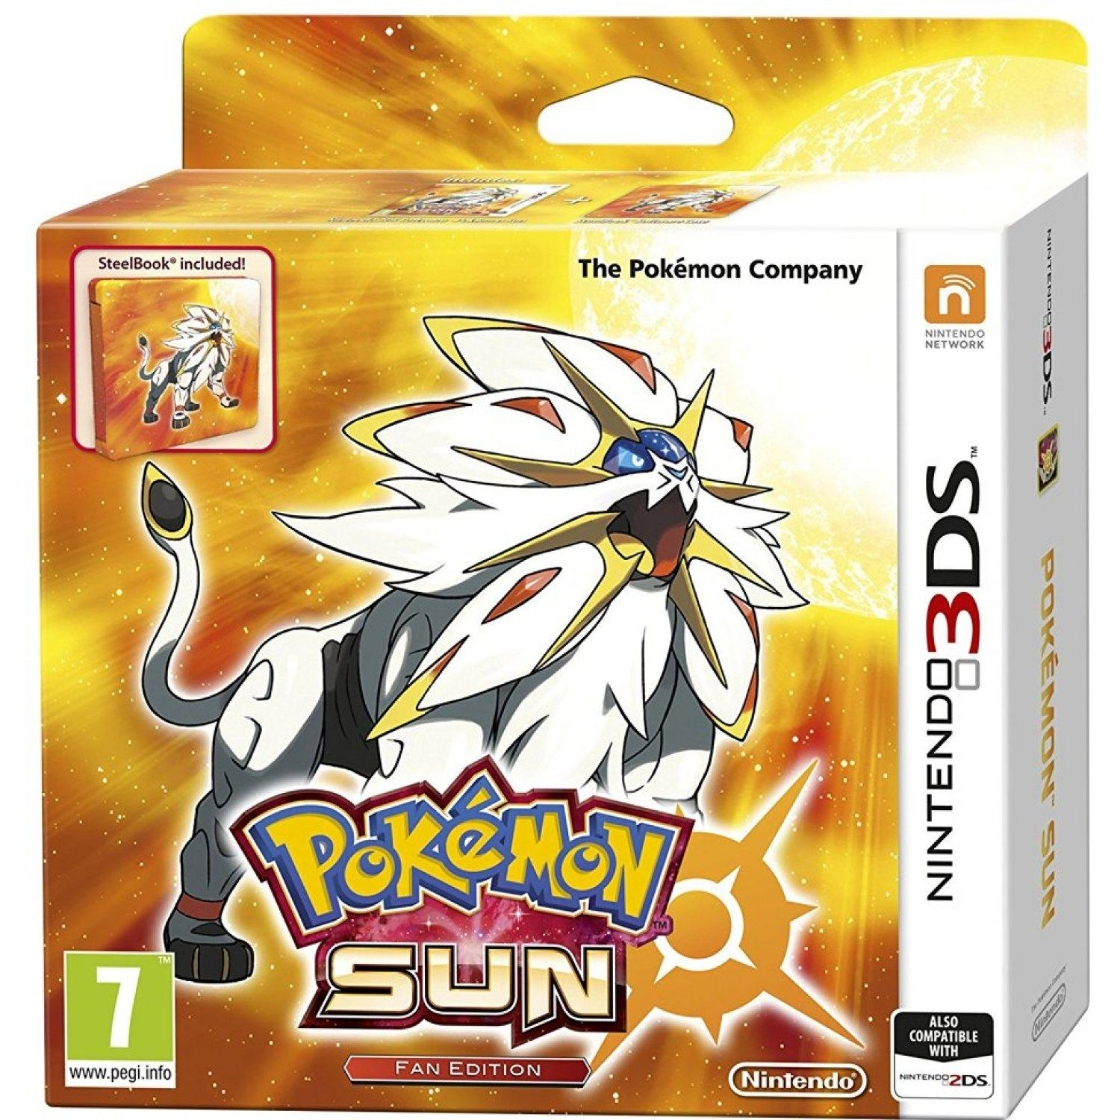 Pokemon Sun Fan Edition (uus) - Alzgamer